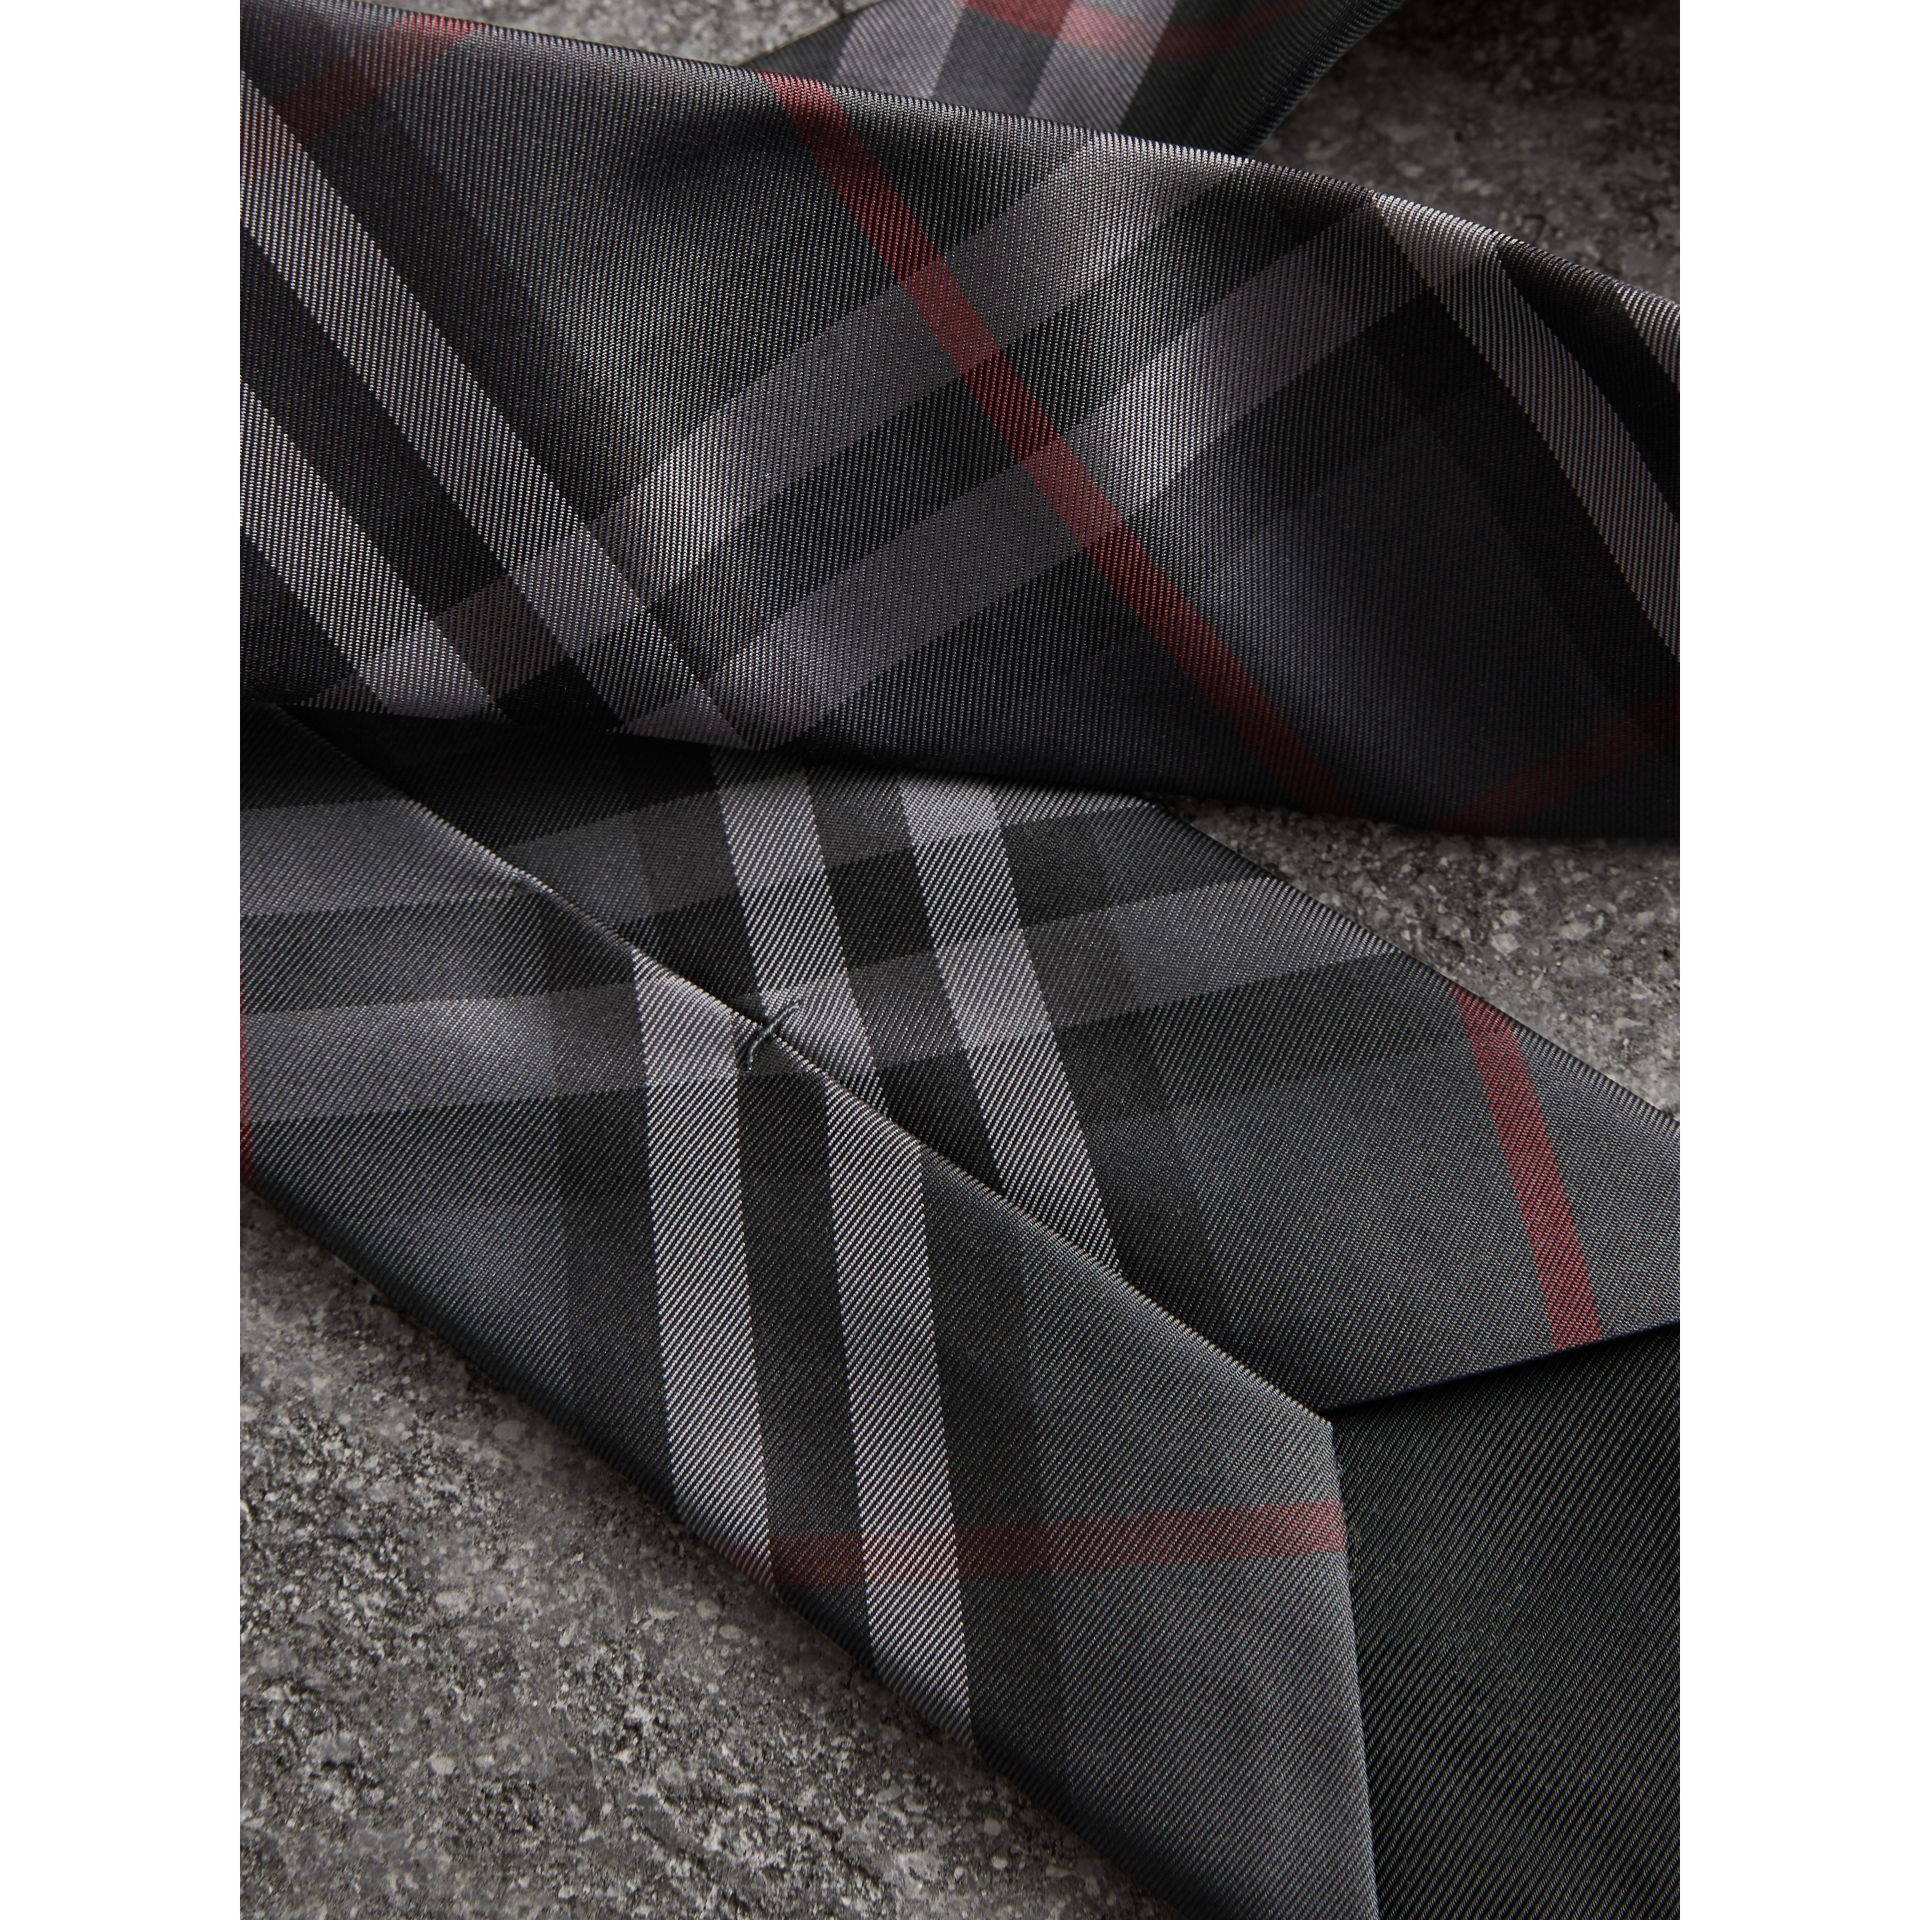 Modern Cut Vintage Check Silk Tie in Dark Charcoal - Men | Burberry Australia - gallery image 1